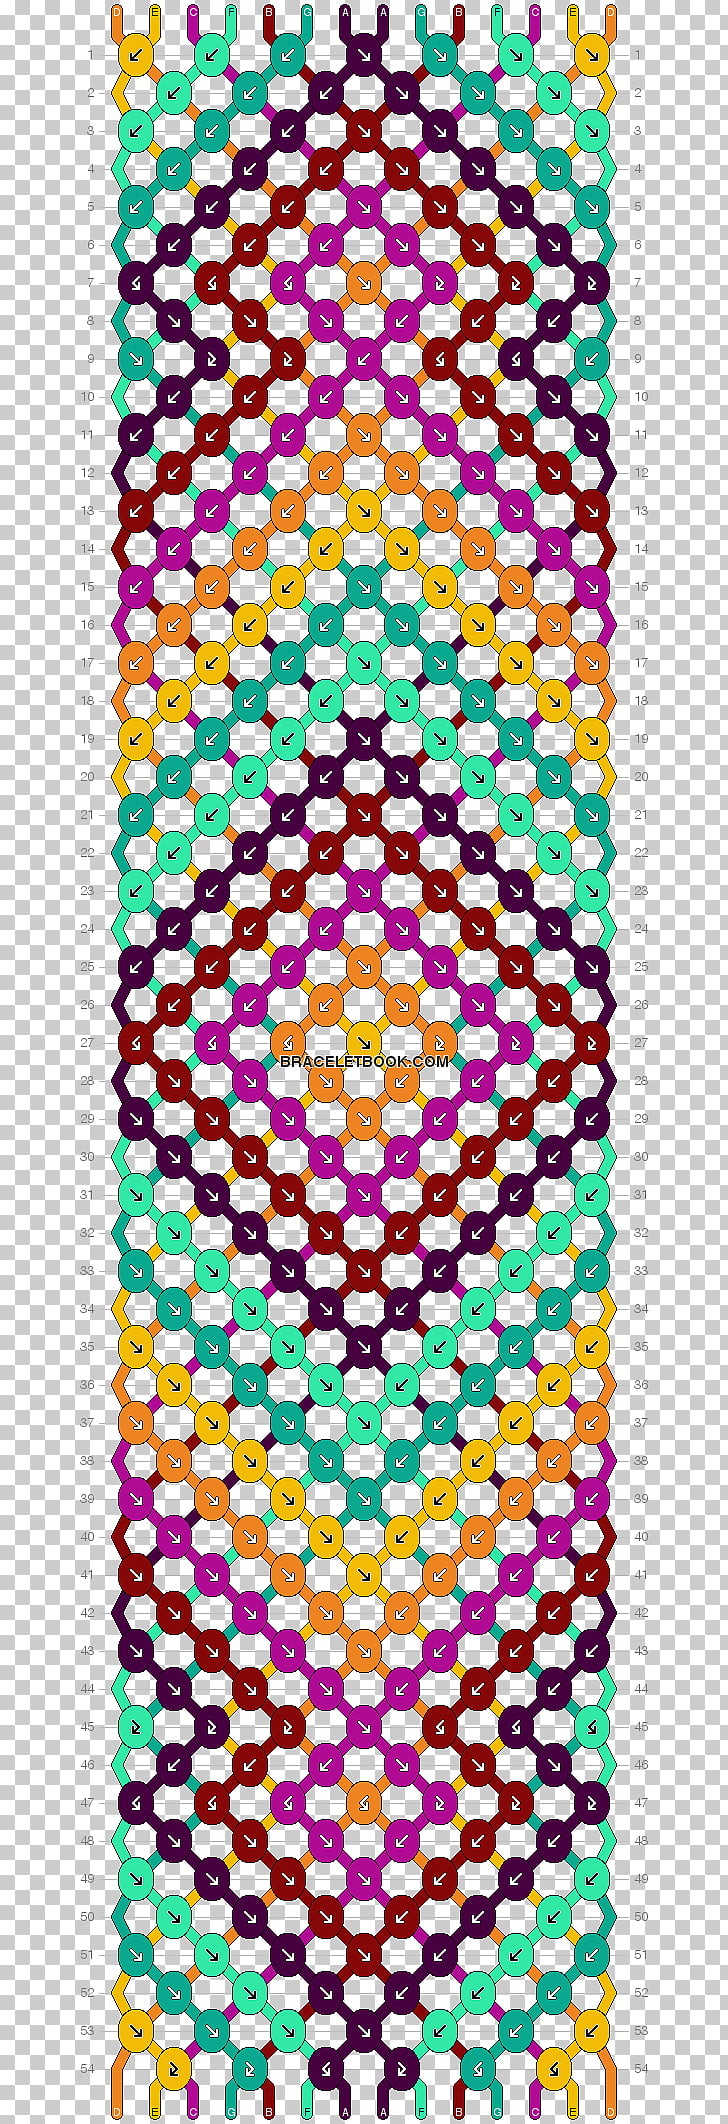 medium resolution of friendship bracelet embroidery thread pattern others png clipart